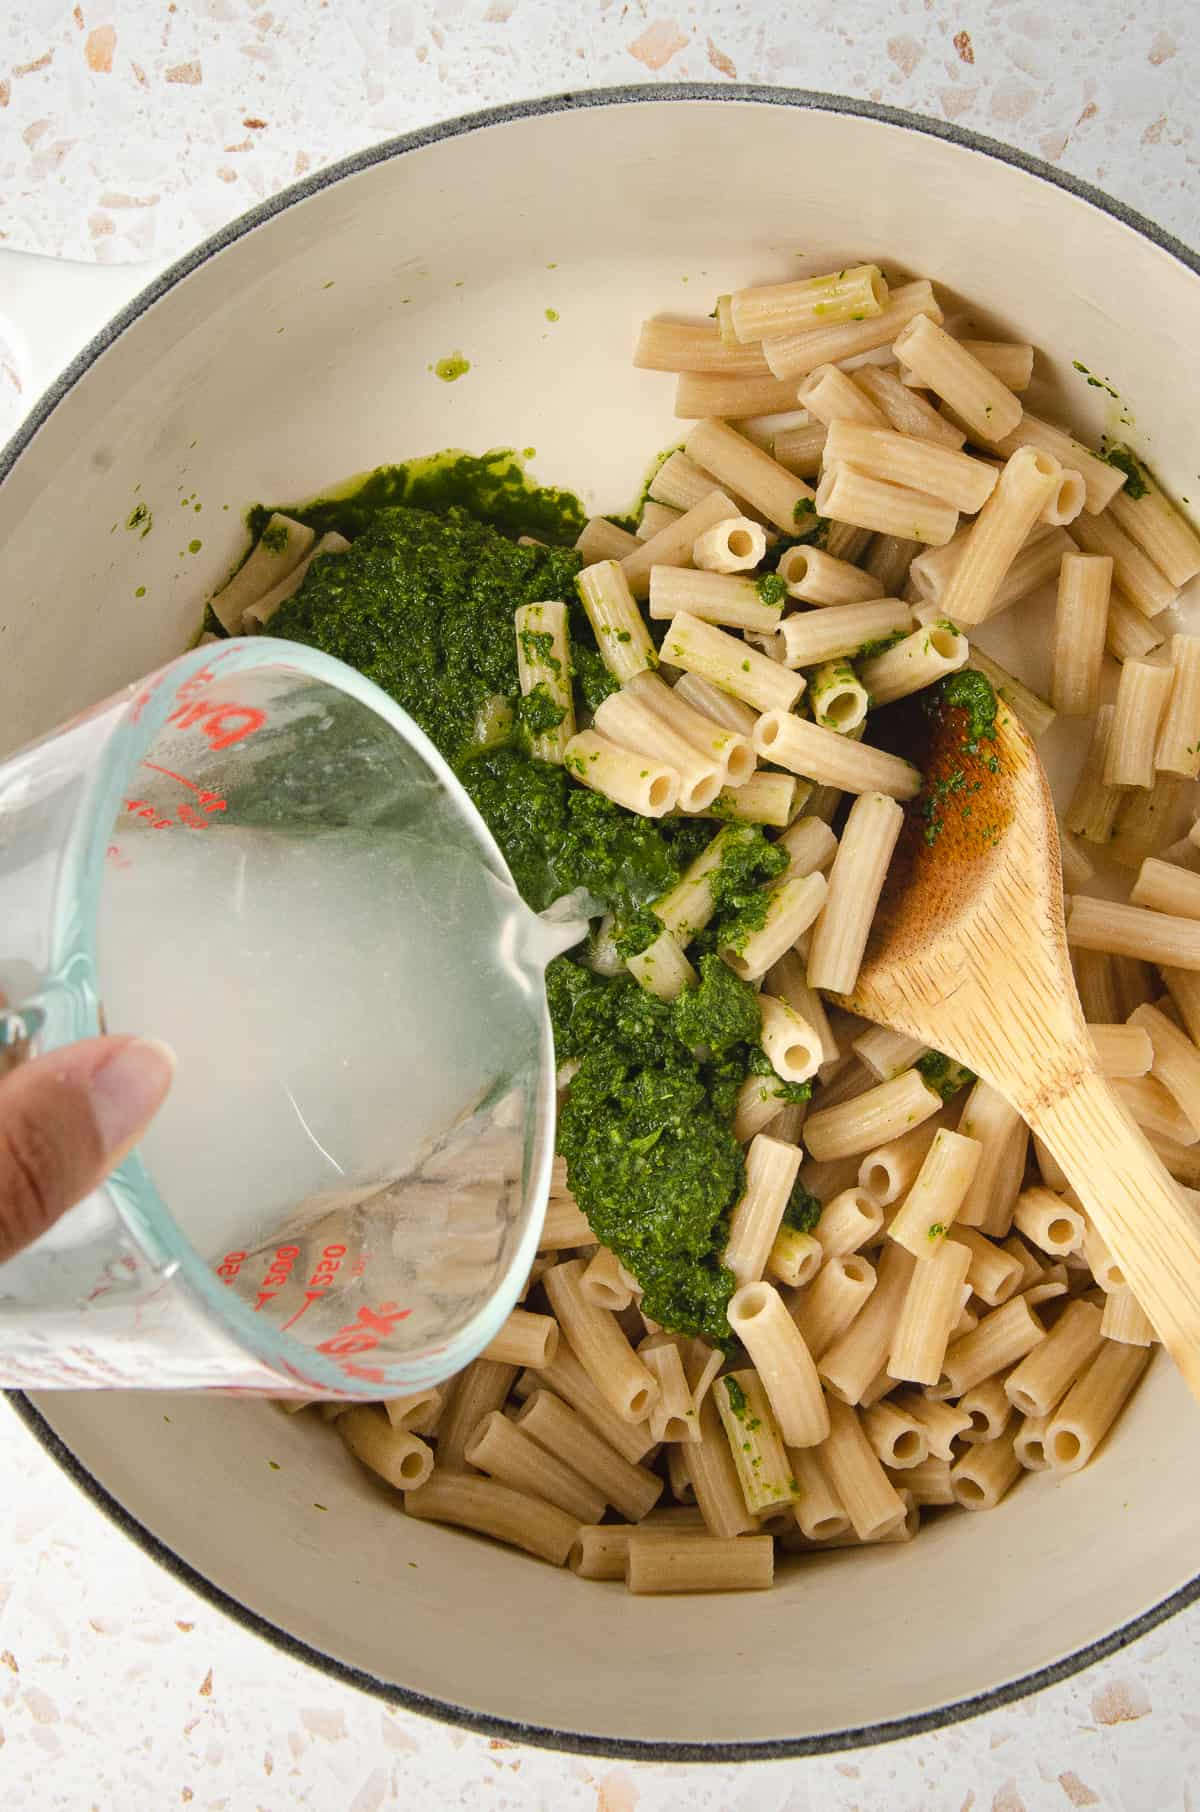 Pouring reserved pasta water onto cooked pasta in a pot.